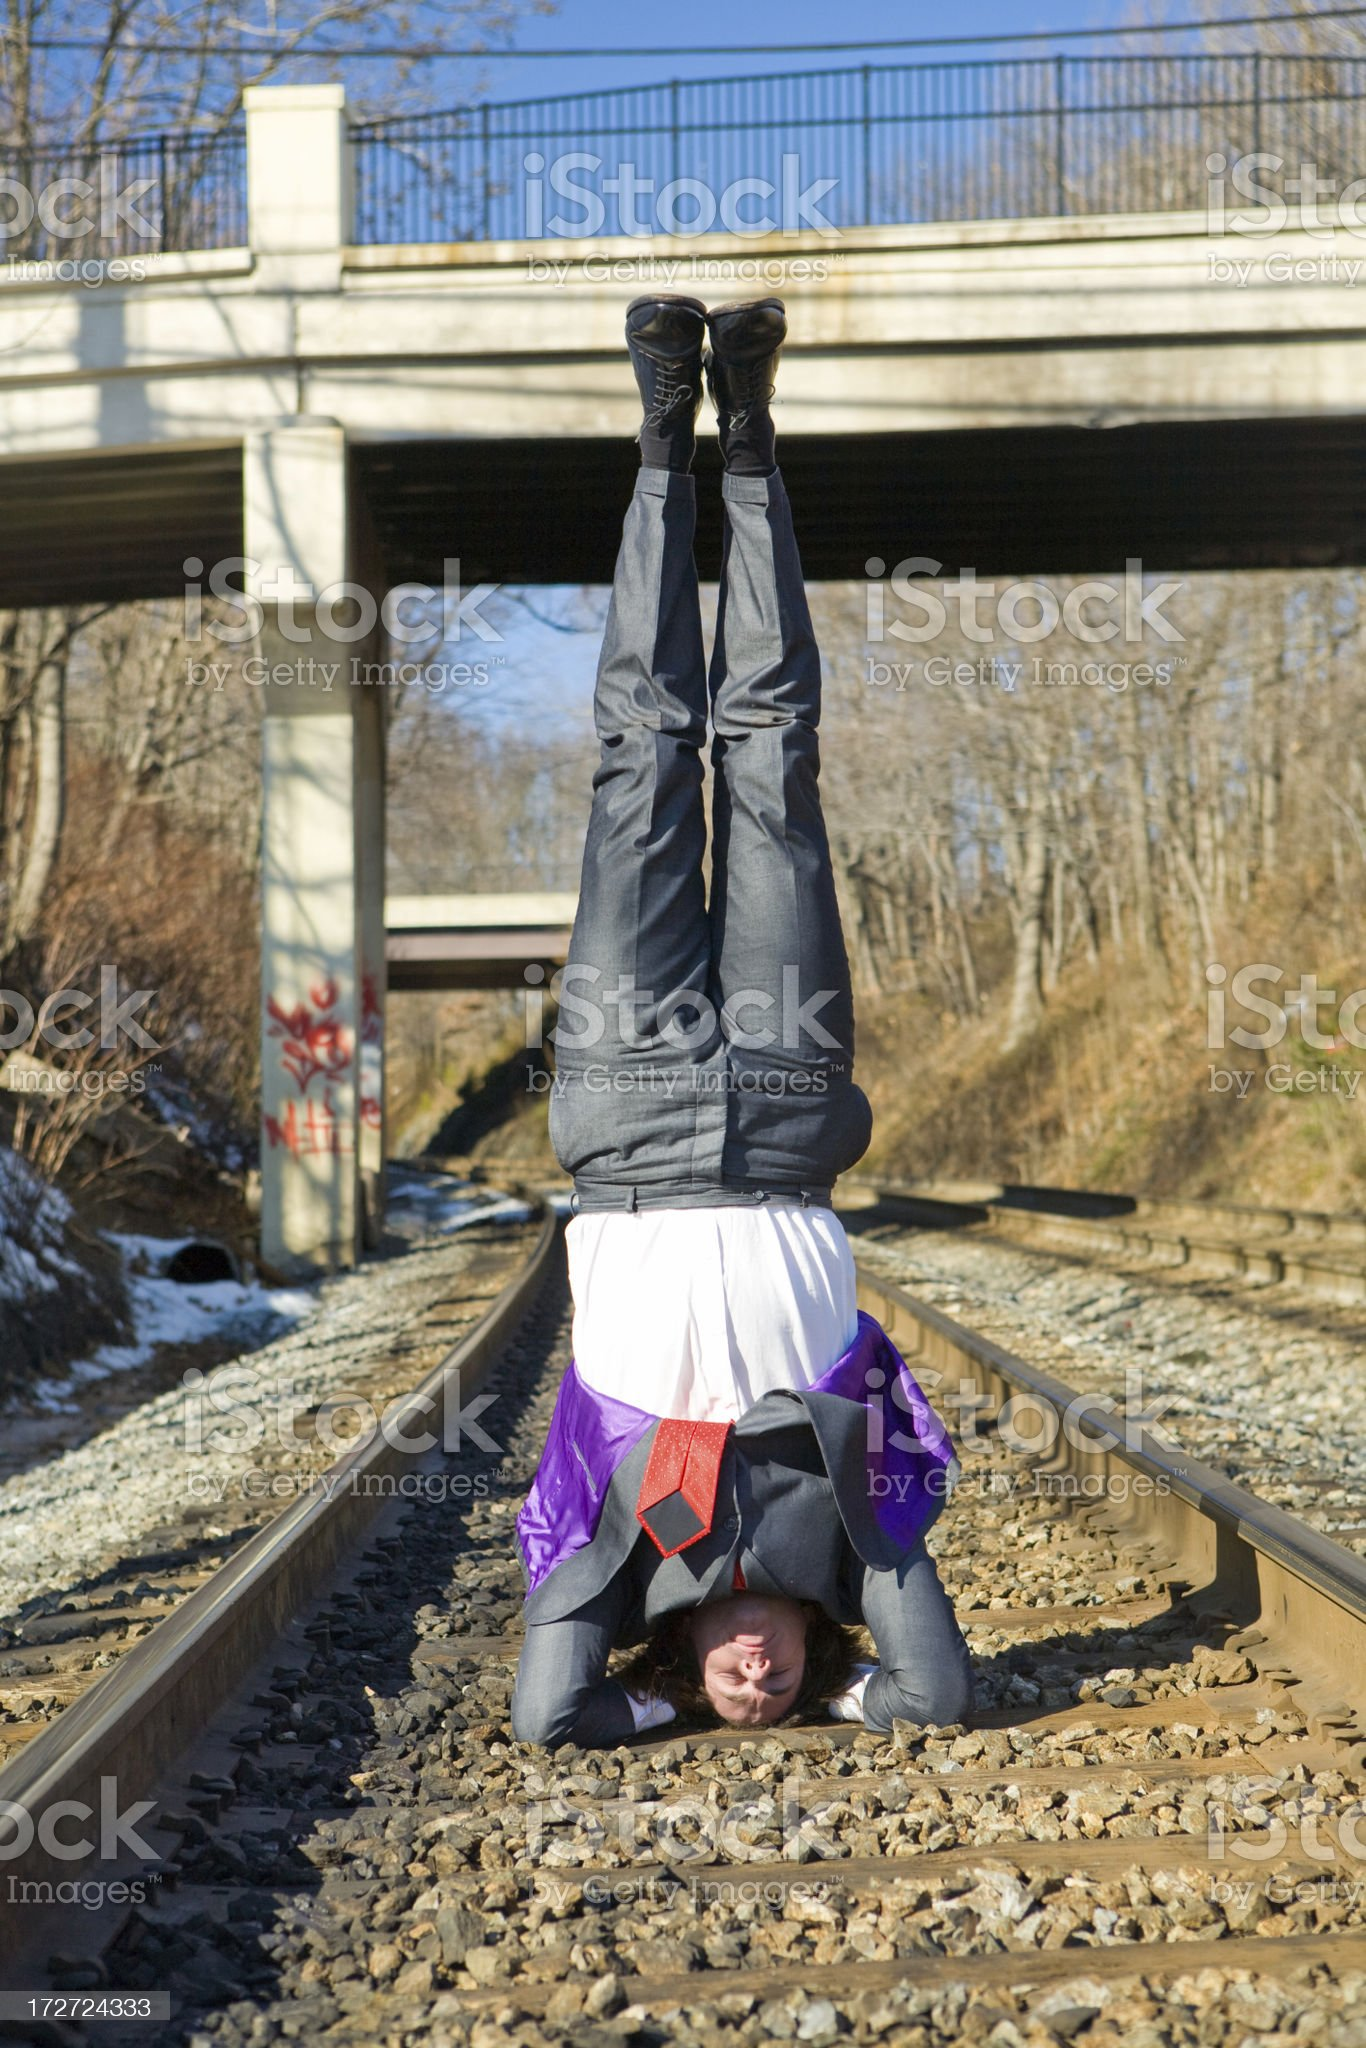 man in business suit does headstand on train tracks royalty-free stock photo